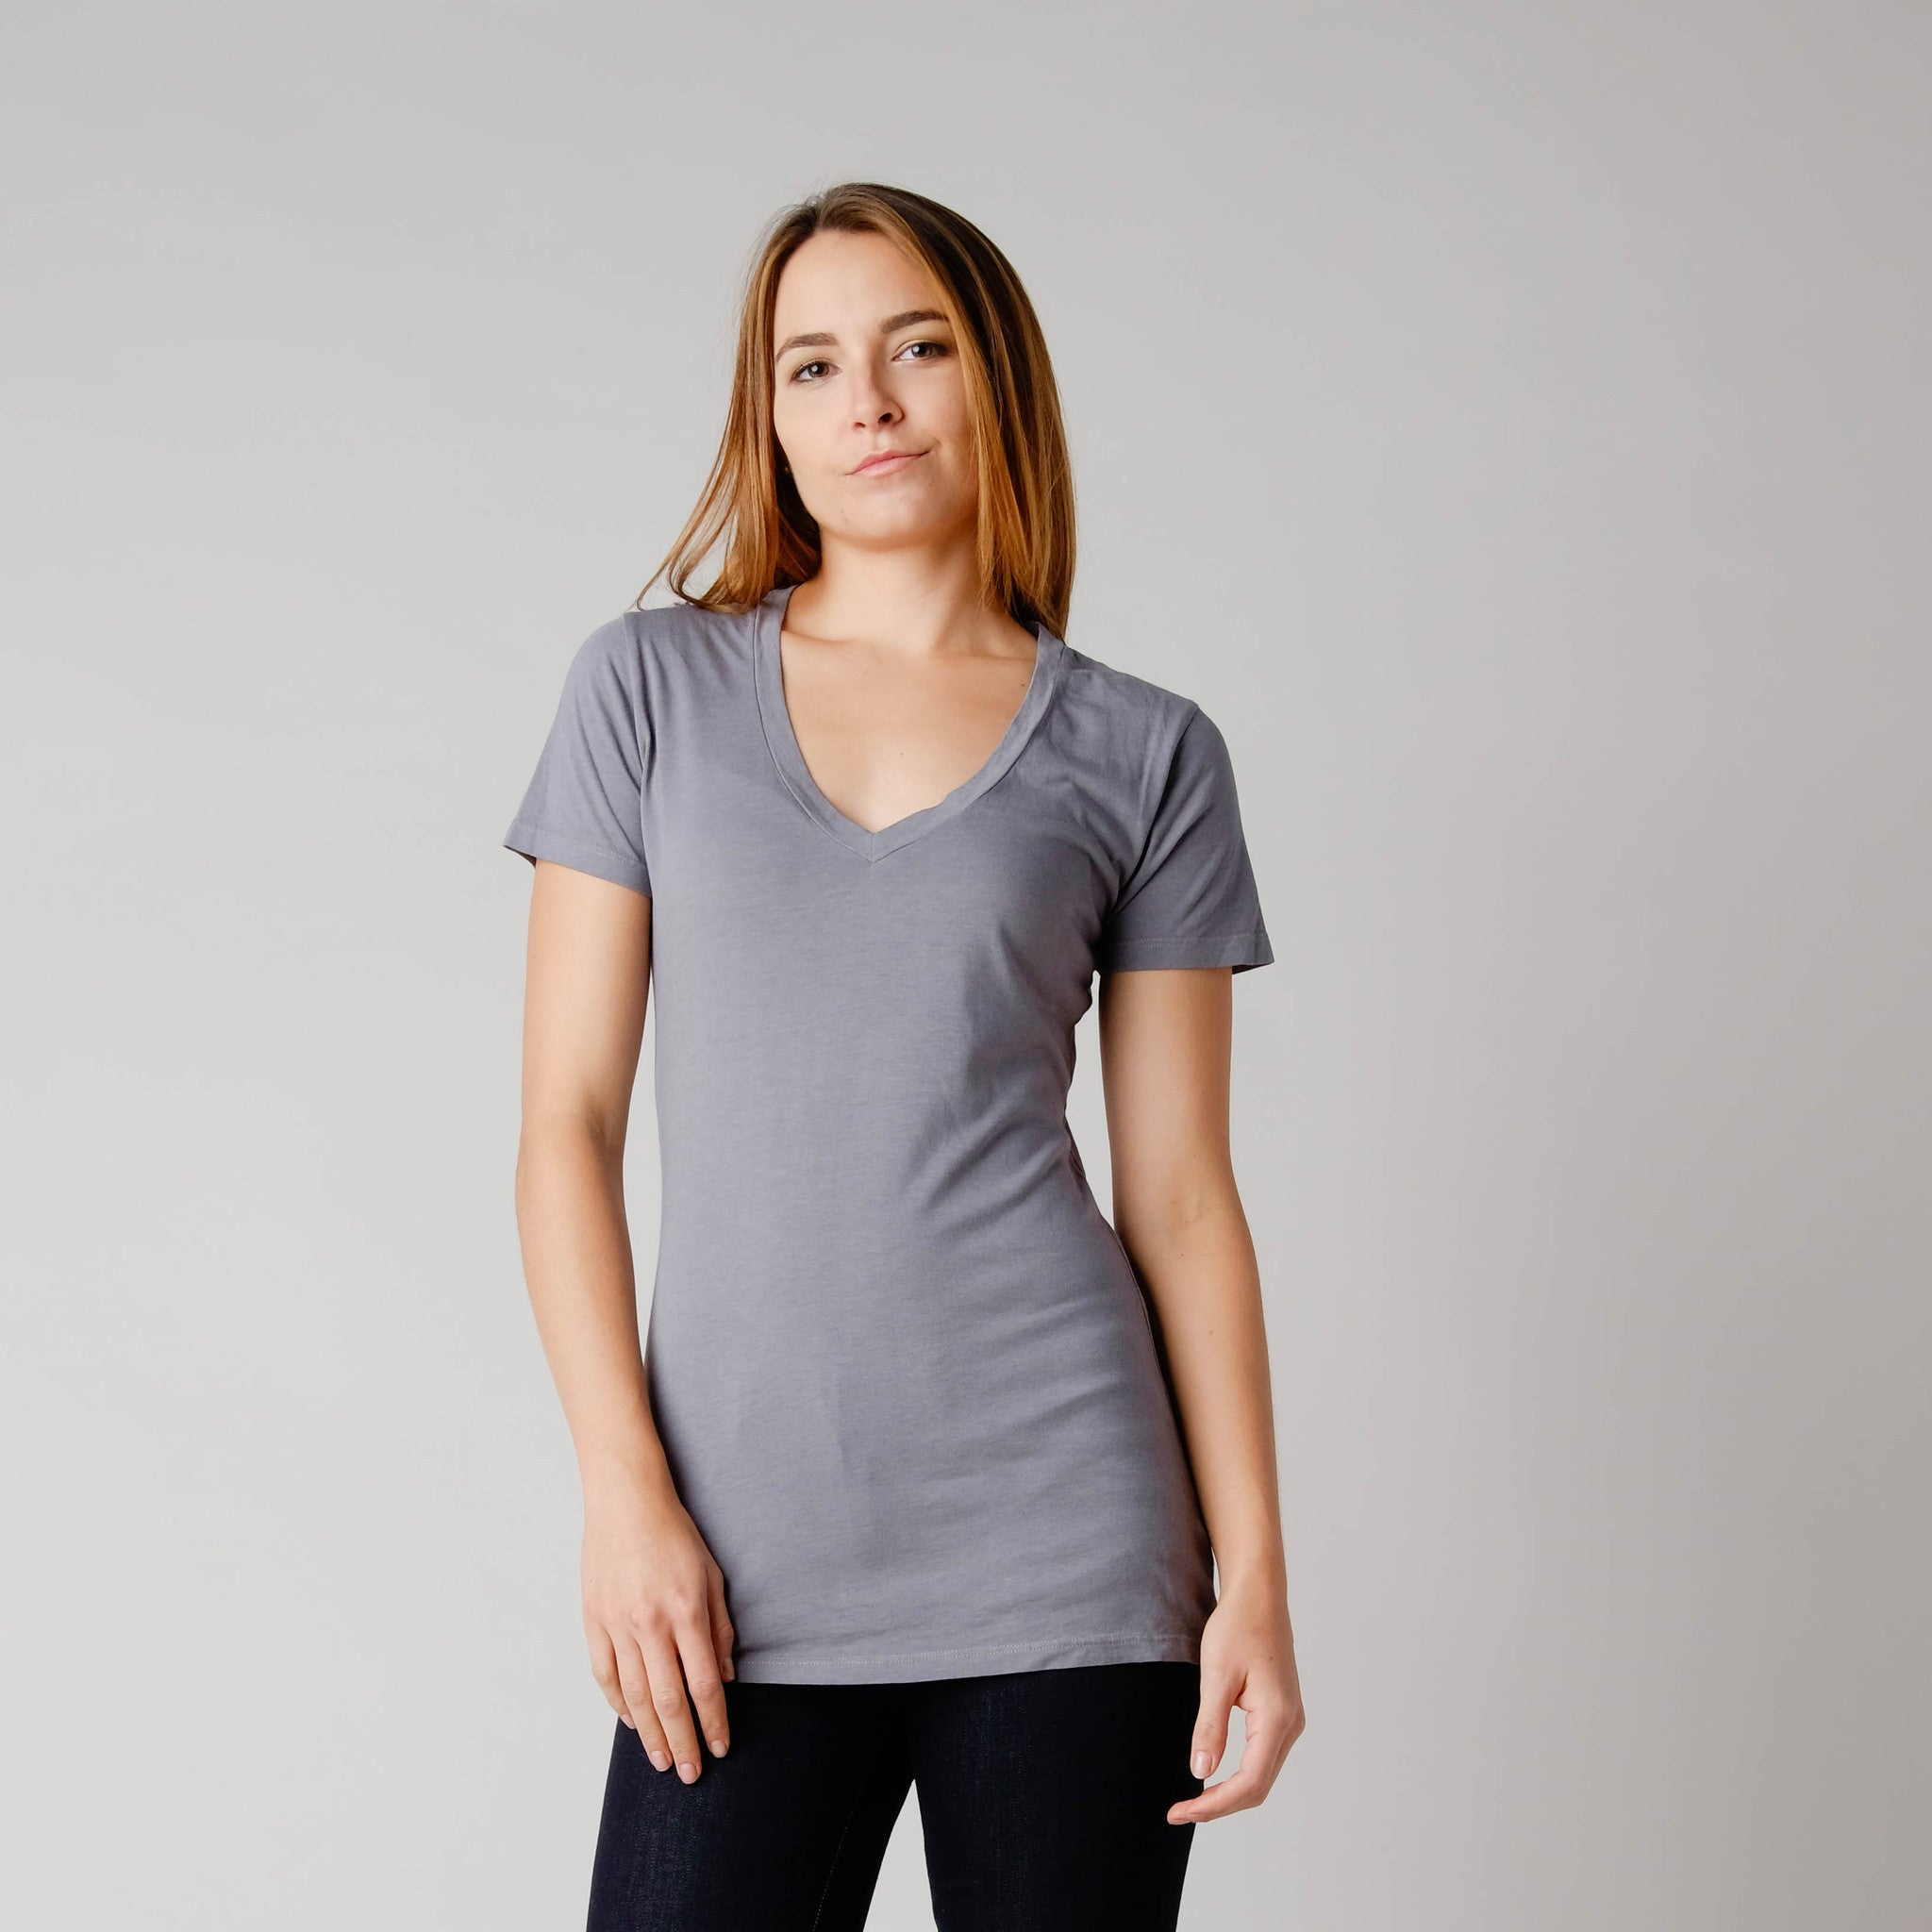 BDC Hemp/Organic Cotton Vee Neck Tee Earl Grey